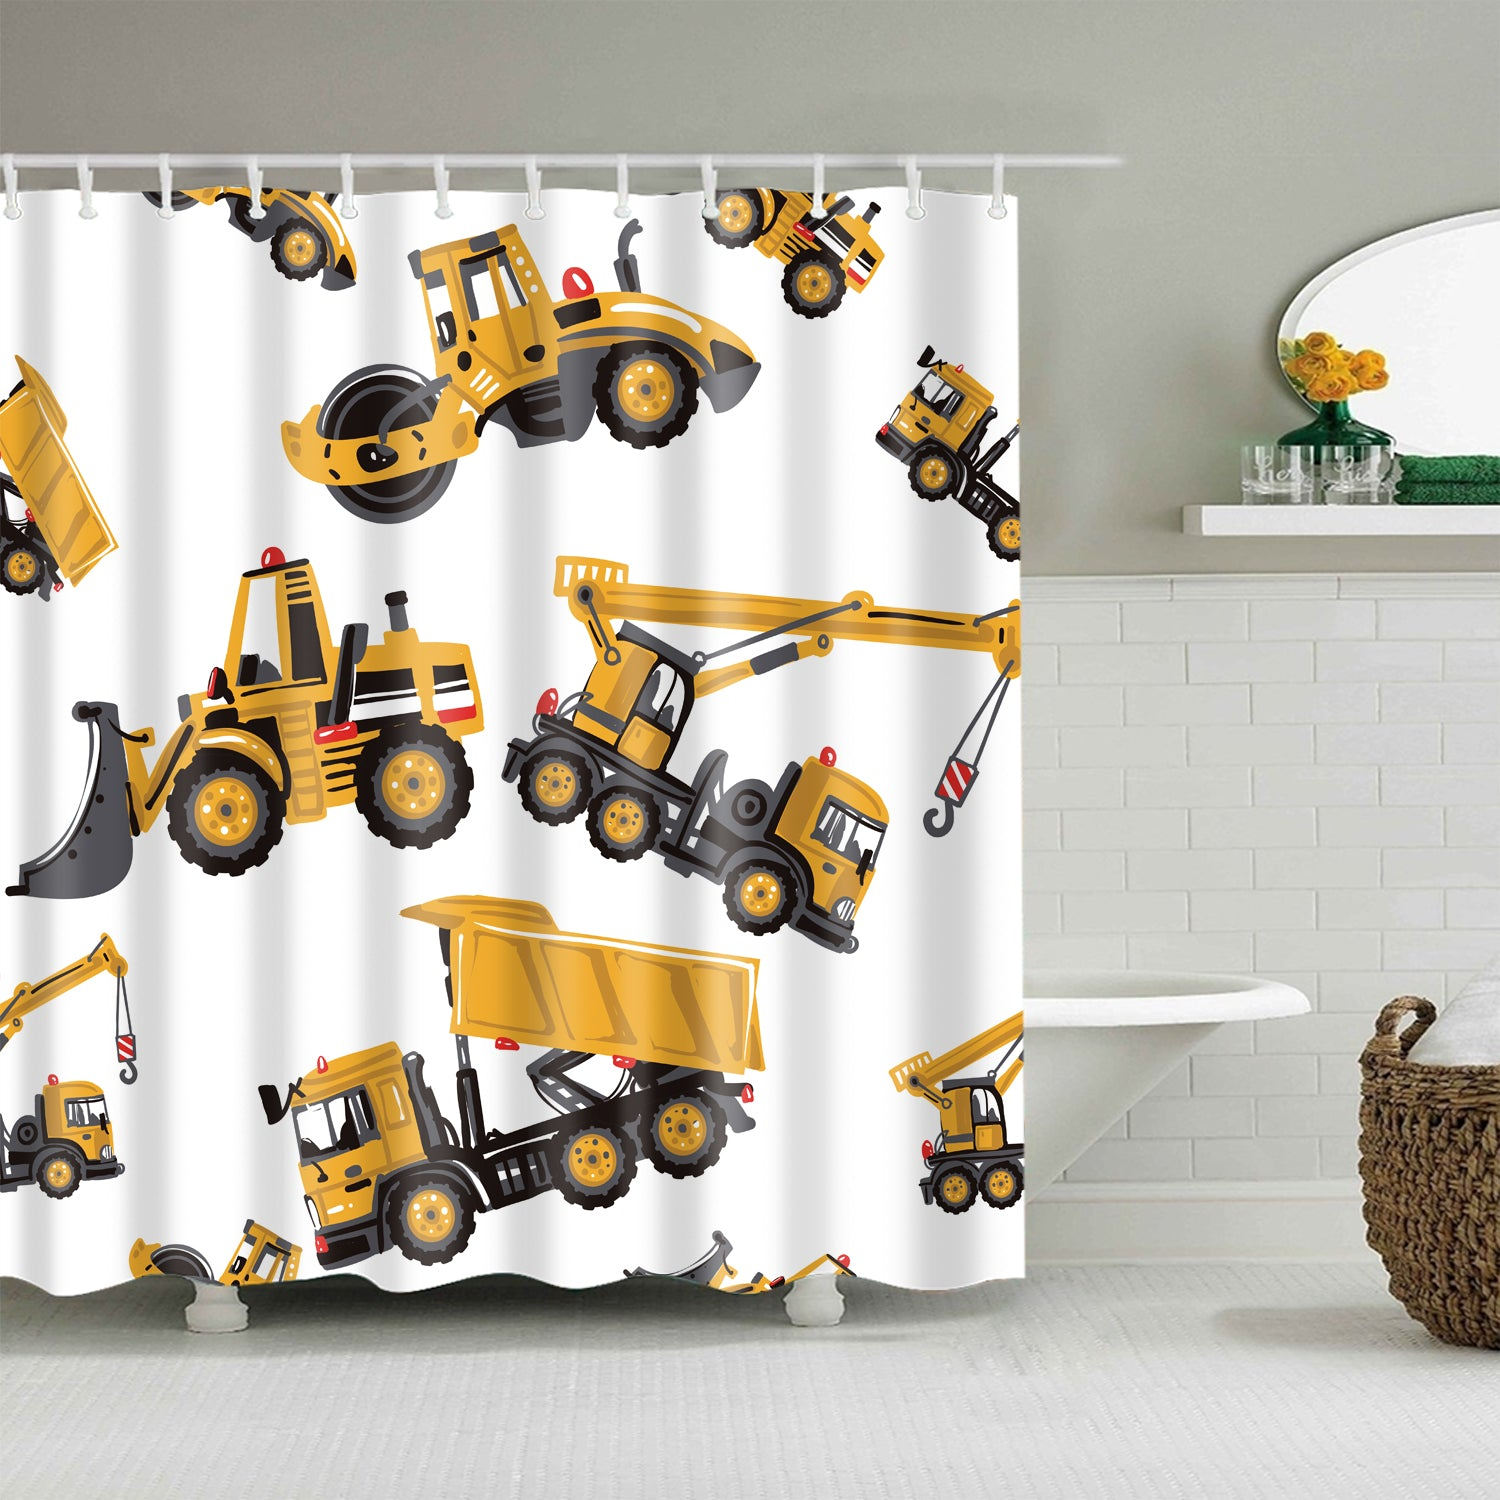 Yellow Cartoon Excavator Truck Shower Curtain Kids Construction Bathroom Decor